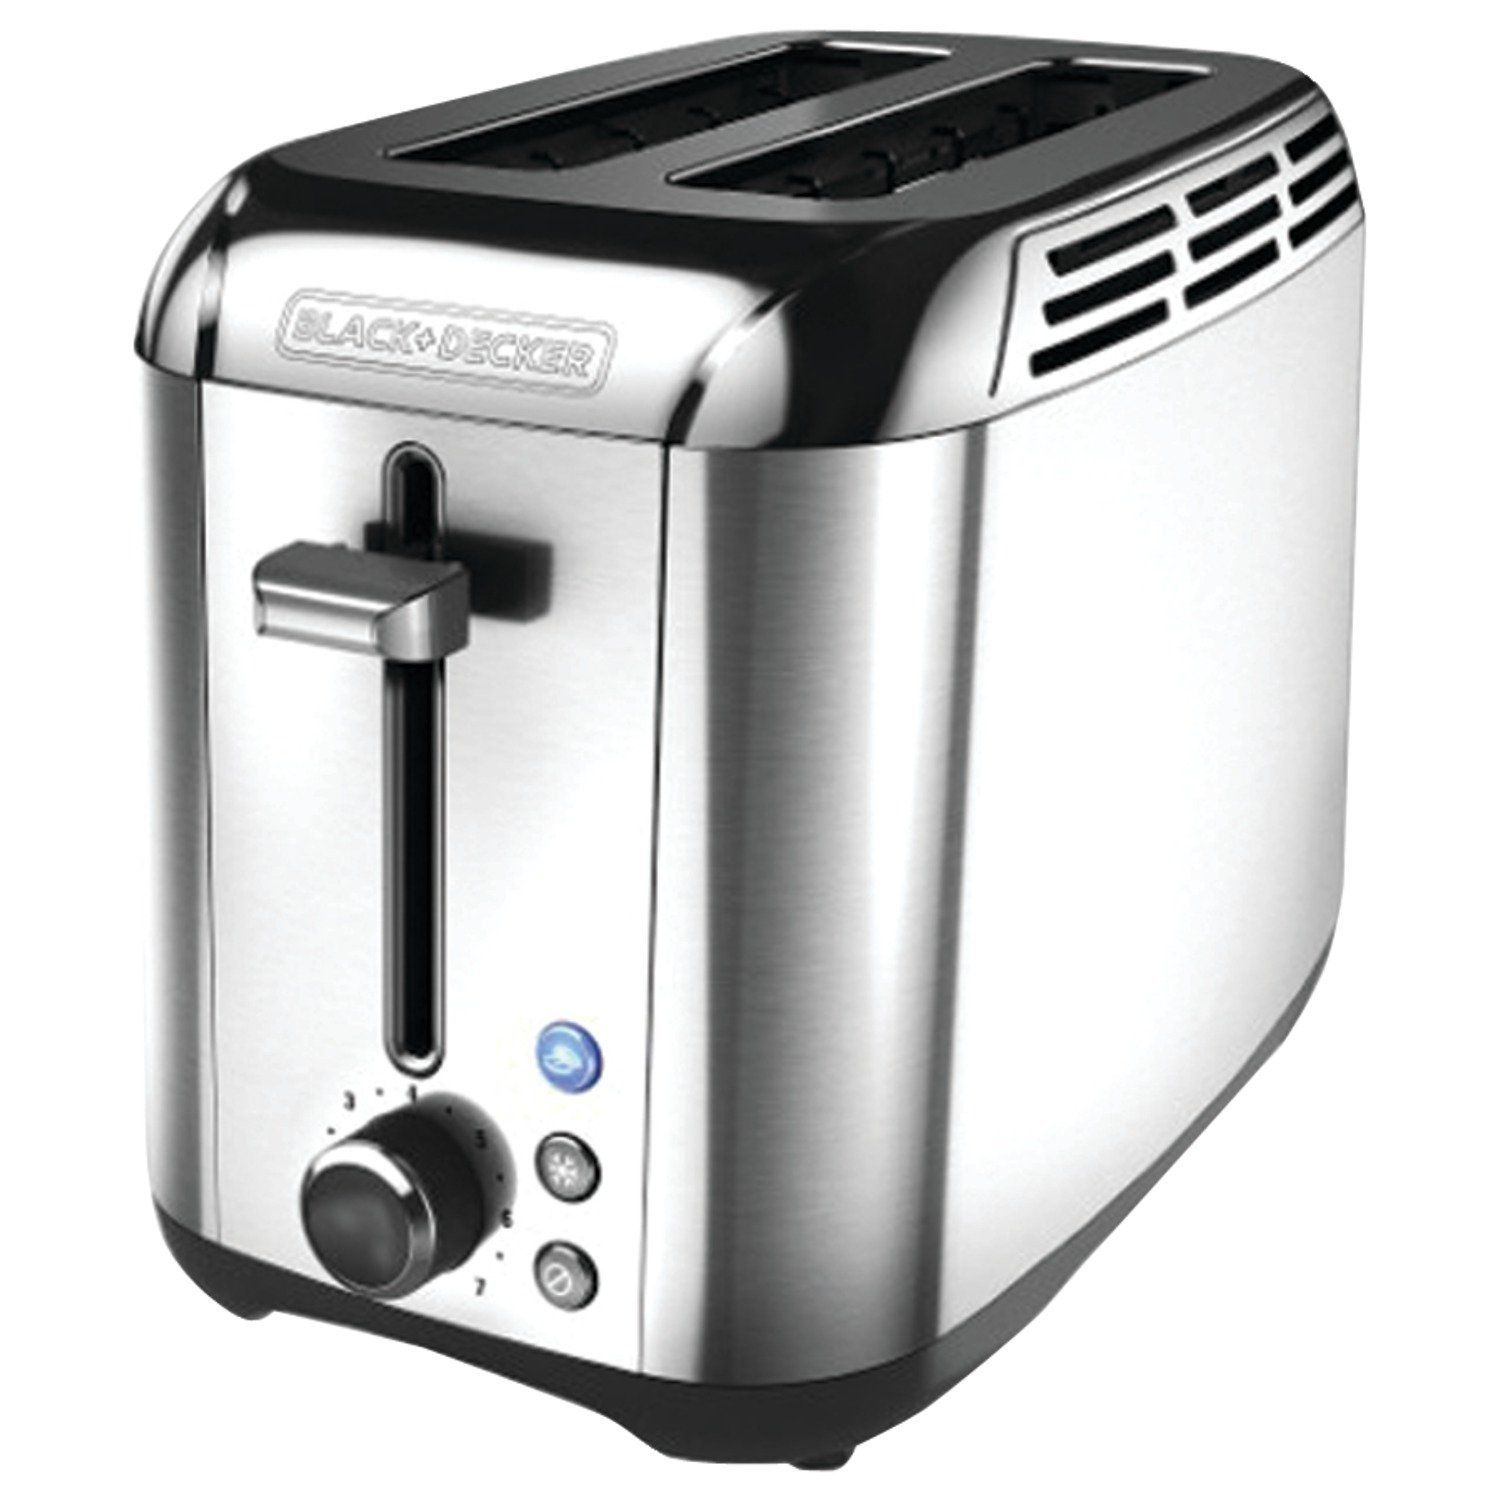 compact two slice hamilton oster toasters best large brushed beach dp digital steel stainless bread amazon cuisinart toaster bagel